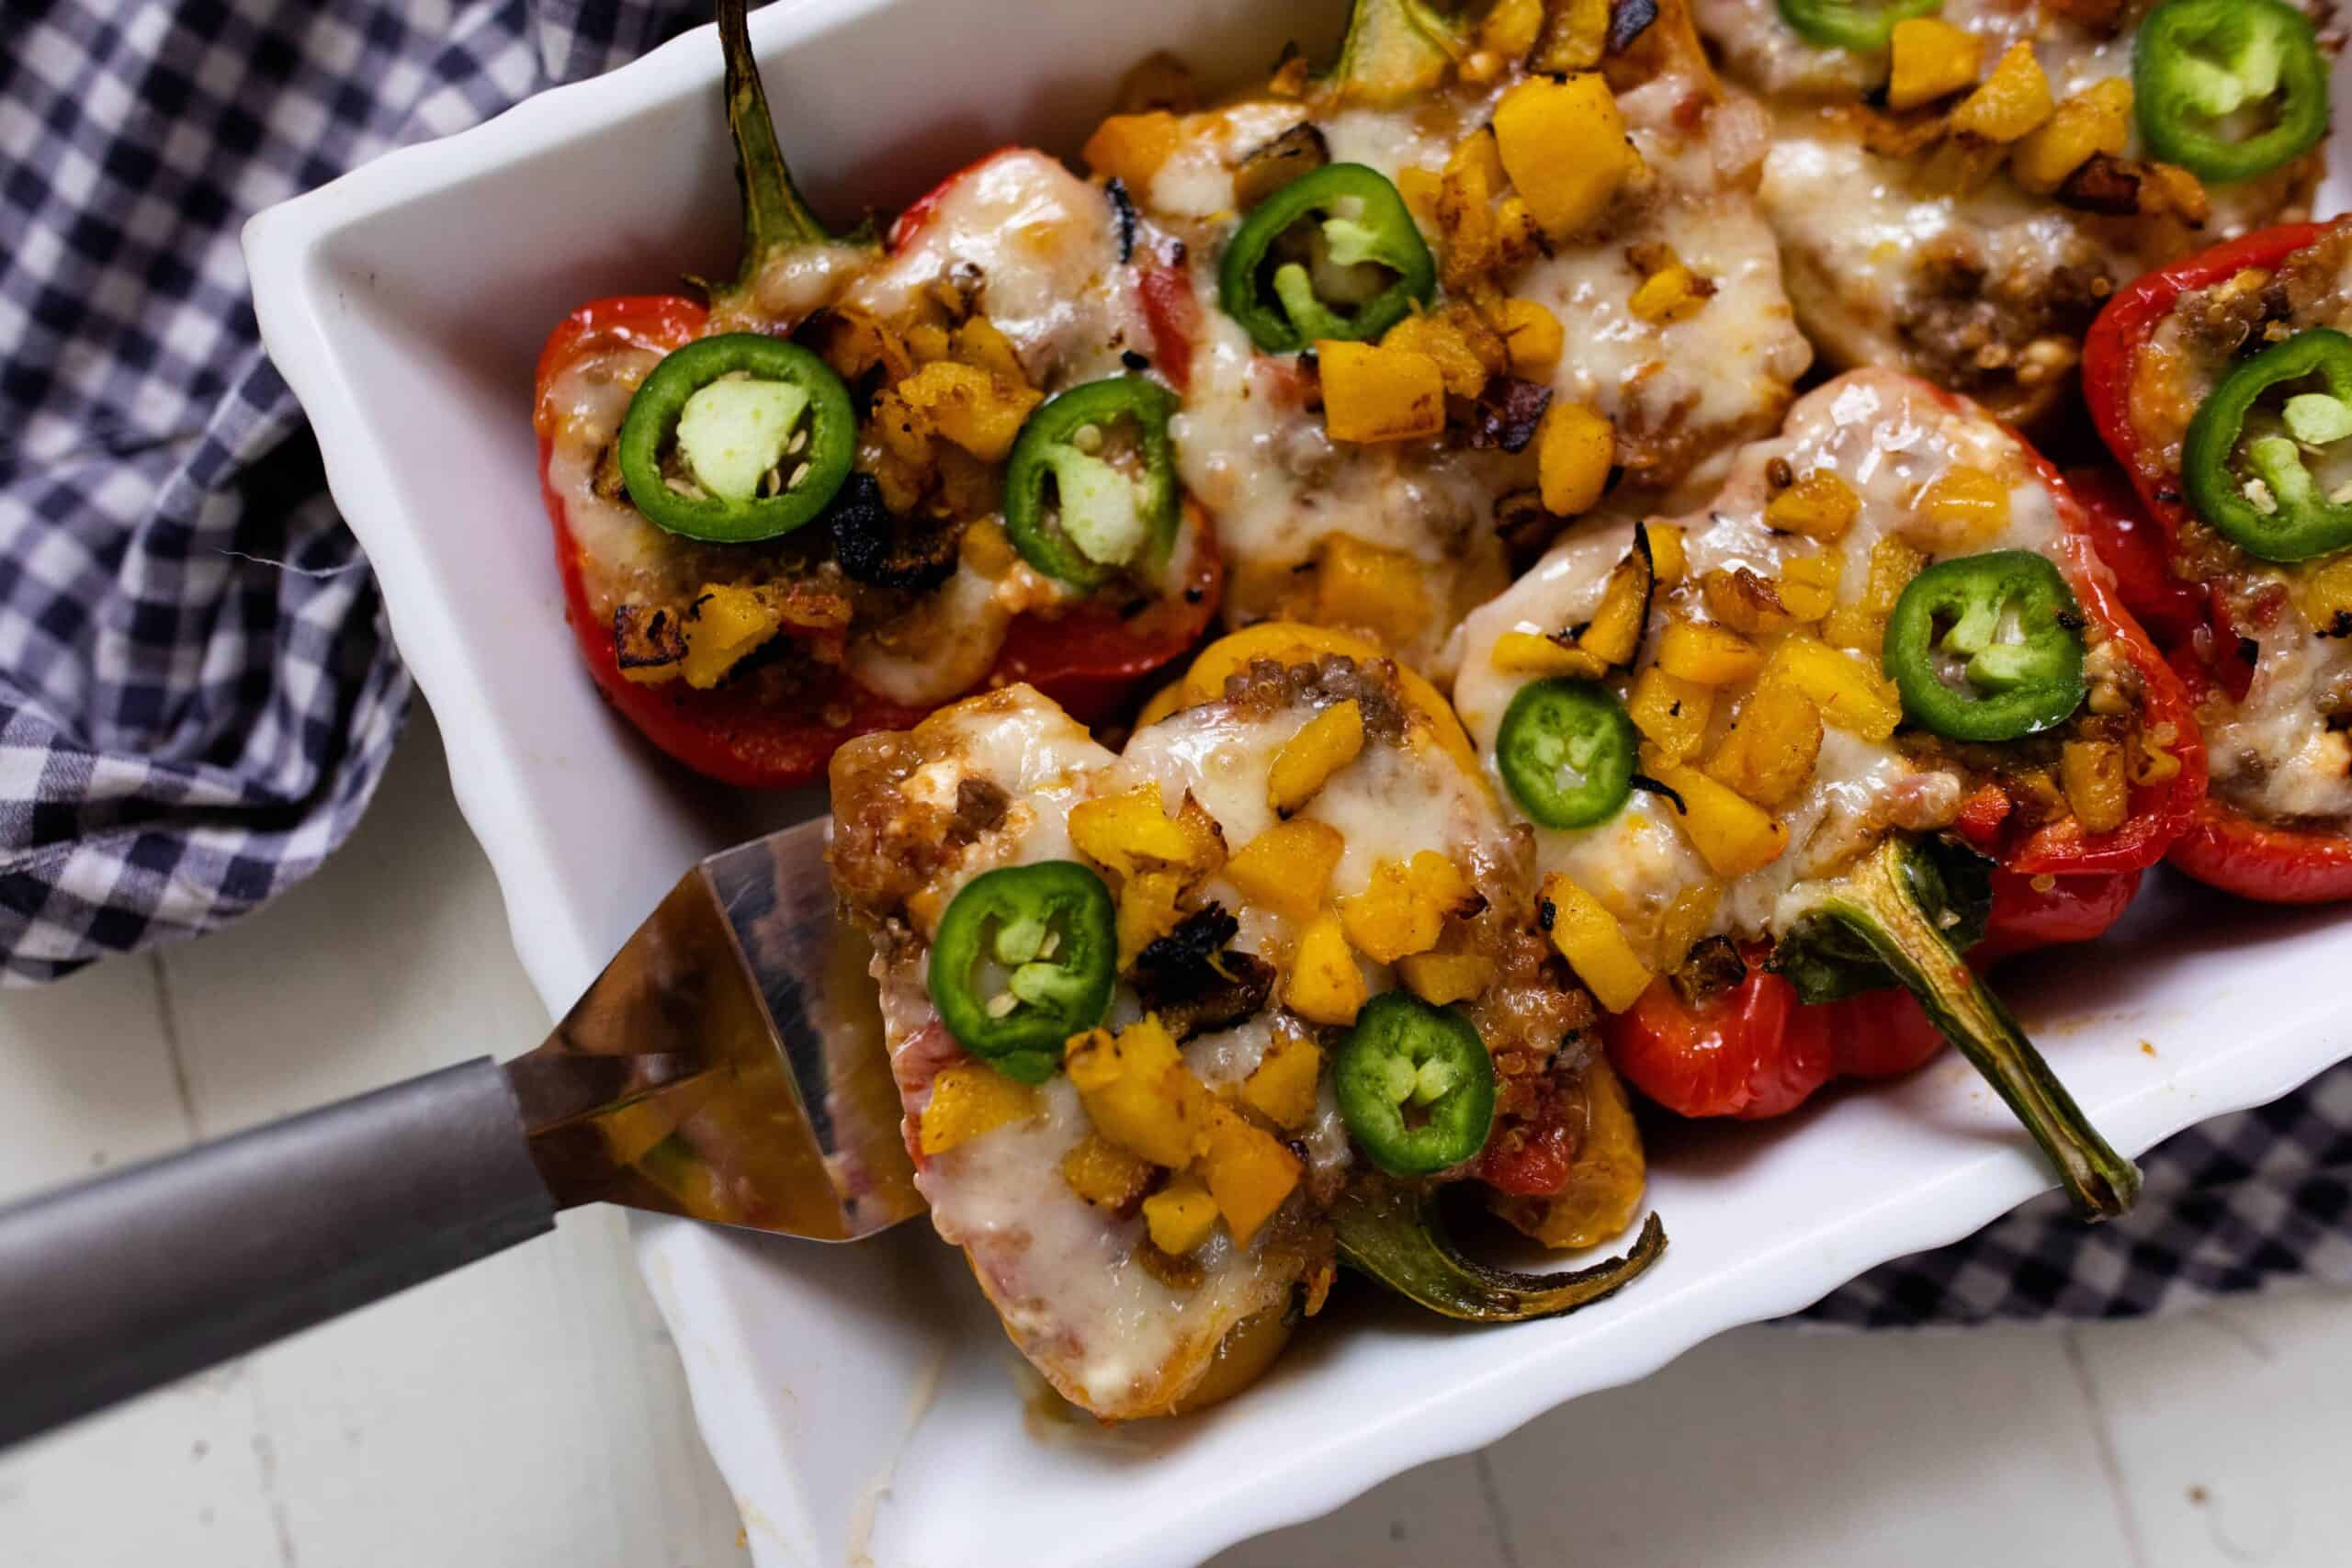 baking dish full of stuffed bell peppers with ground beef, covered in melted cheese and topped with sliced jalapenos.